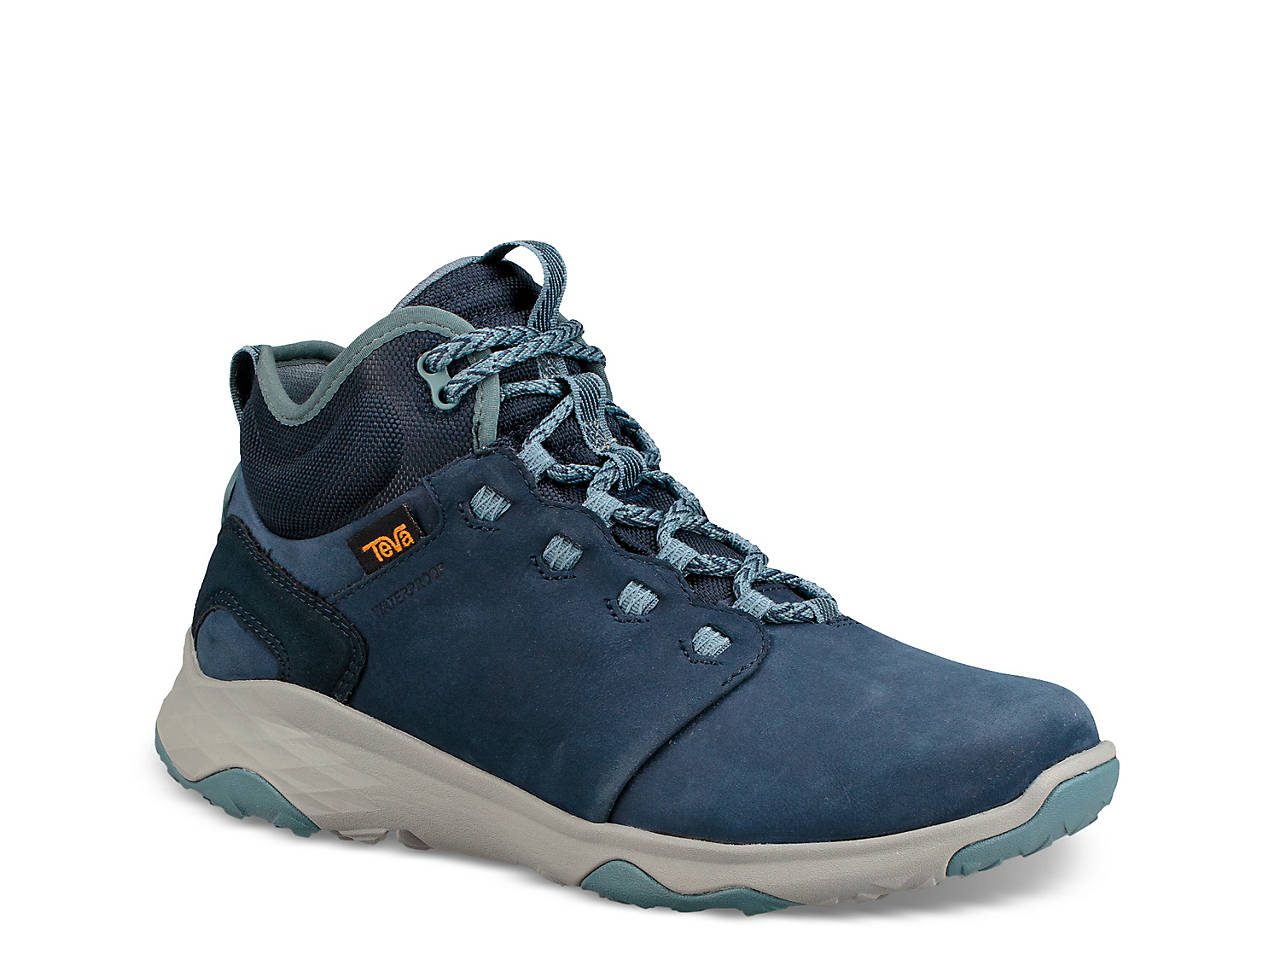 Arrowood 2 Hiking Boot by Teva